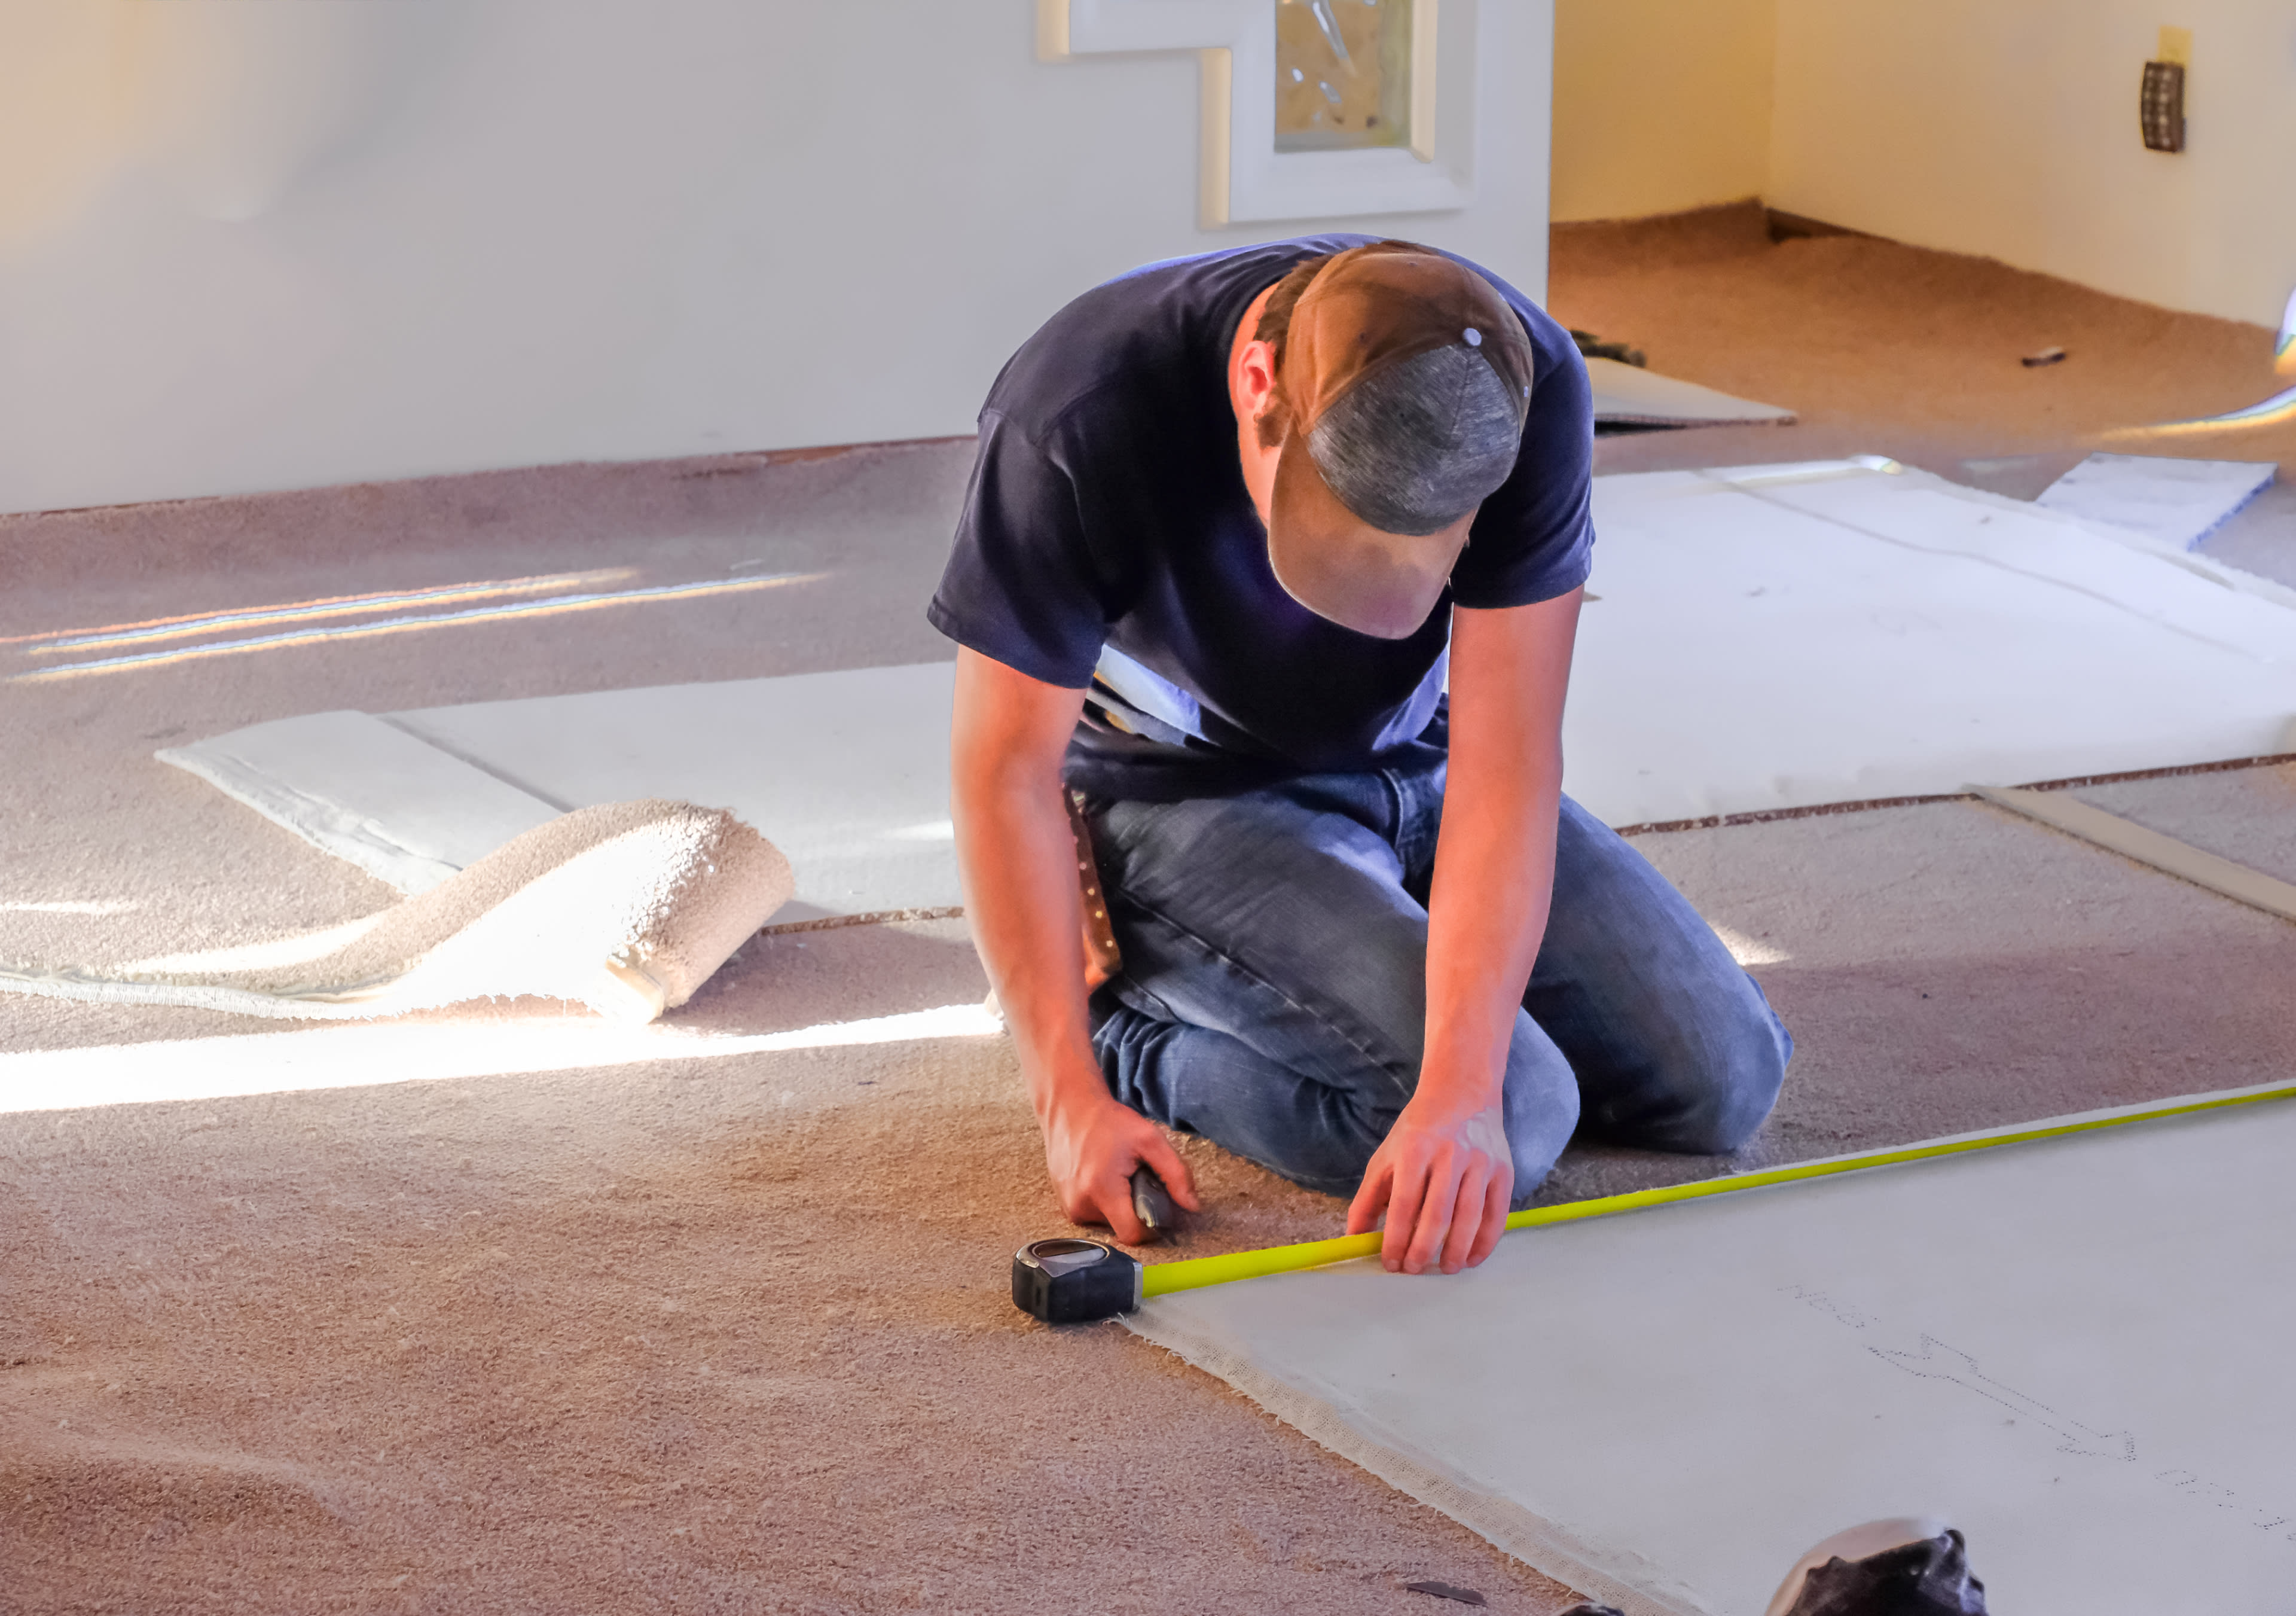 Carpenter-measuring-new-rugs-before-installation-1085092000_4025x2832